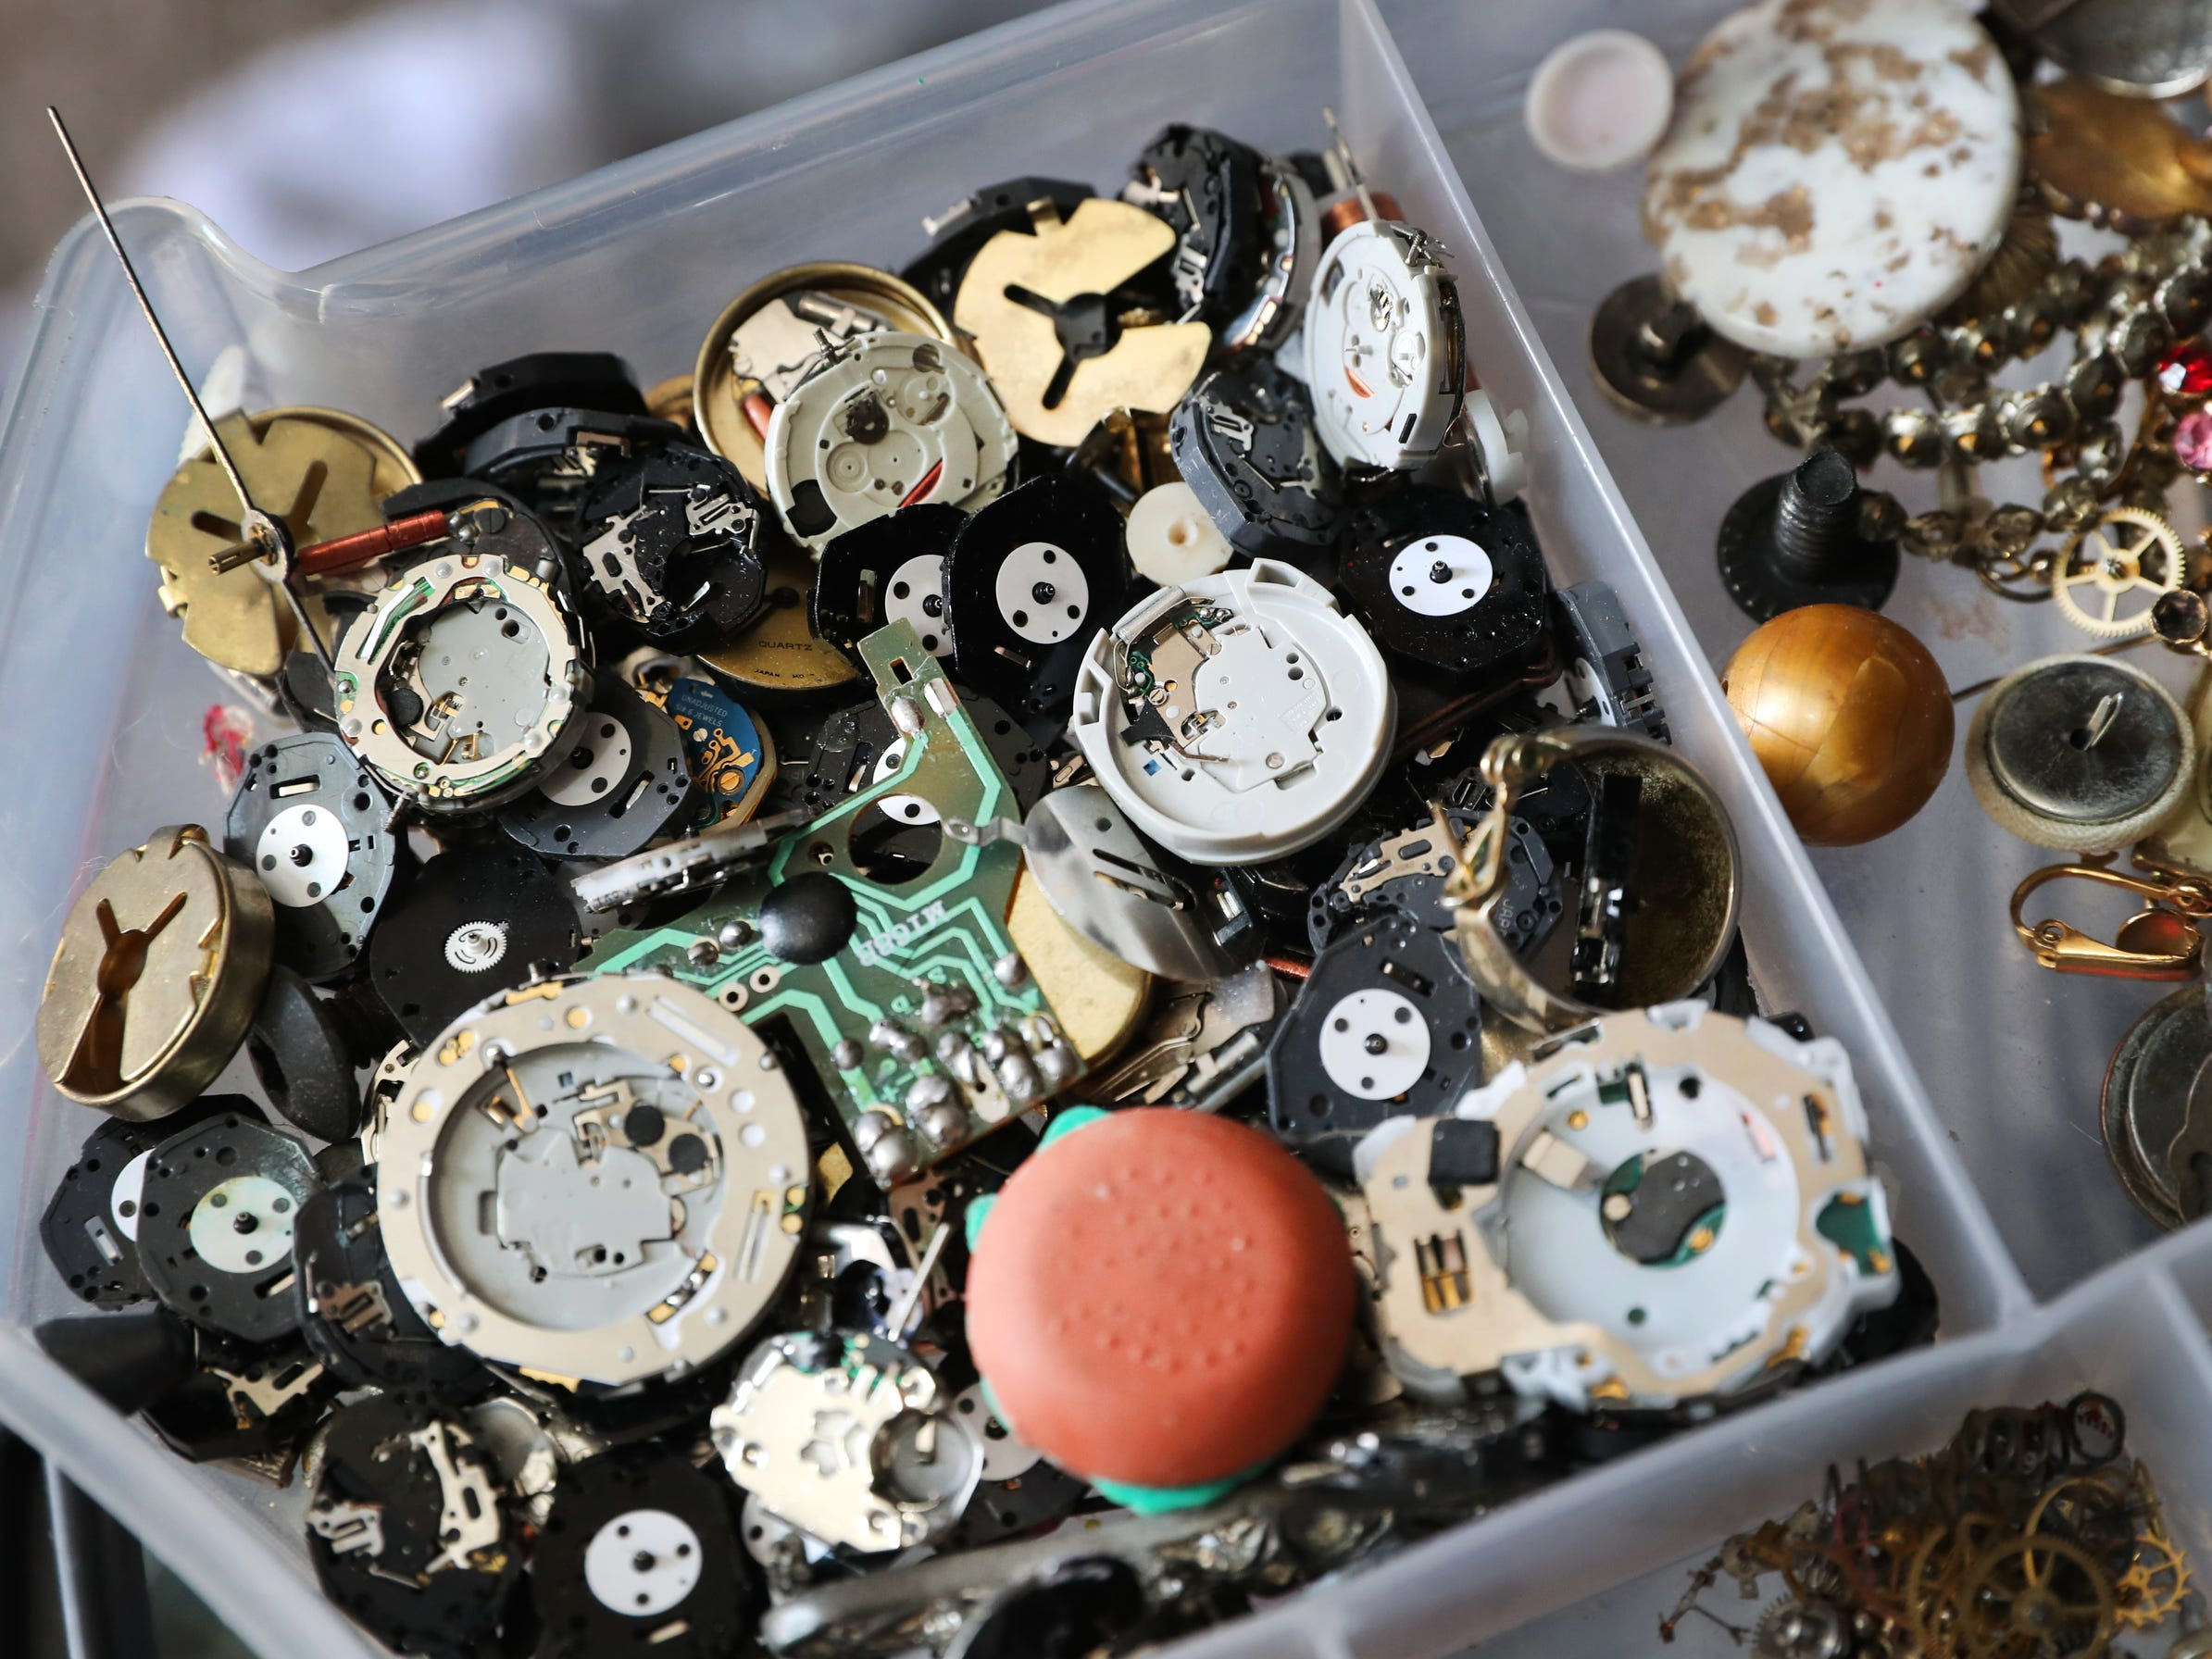 Watch parts are stored in a bin in Michelle Sweatt's home studio on Tuesday April 16, 2019. The pieces are used to create her work since time is a common element in her artwork.